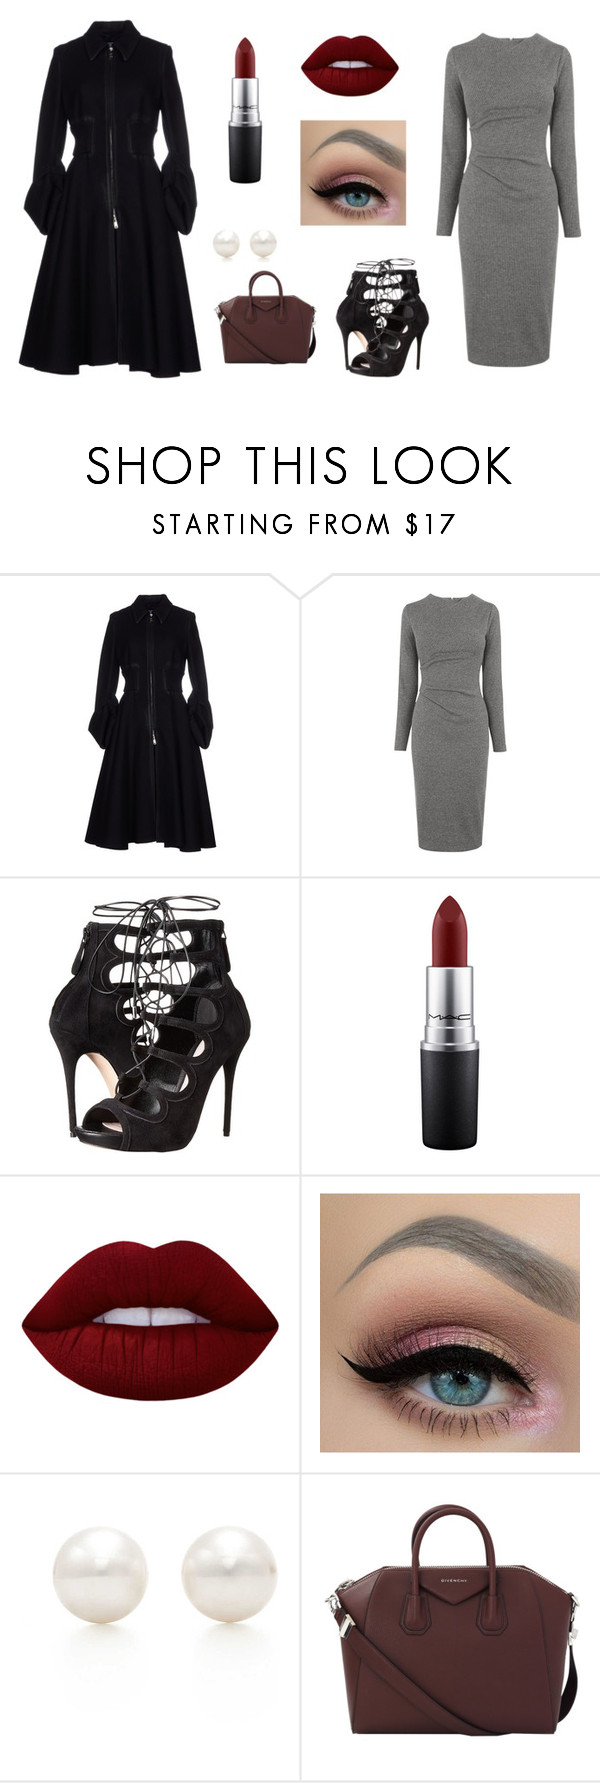 """Untitled #13"" by maddypassolano on Polyvore featuring Prada, Whistles, Alexander McQueen, MAC Cosmetics, Lime Crime, Tiffany & Co. and Givenchy"